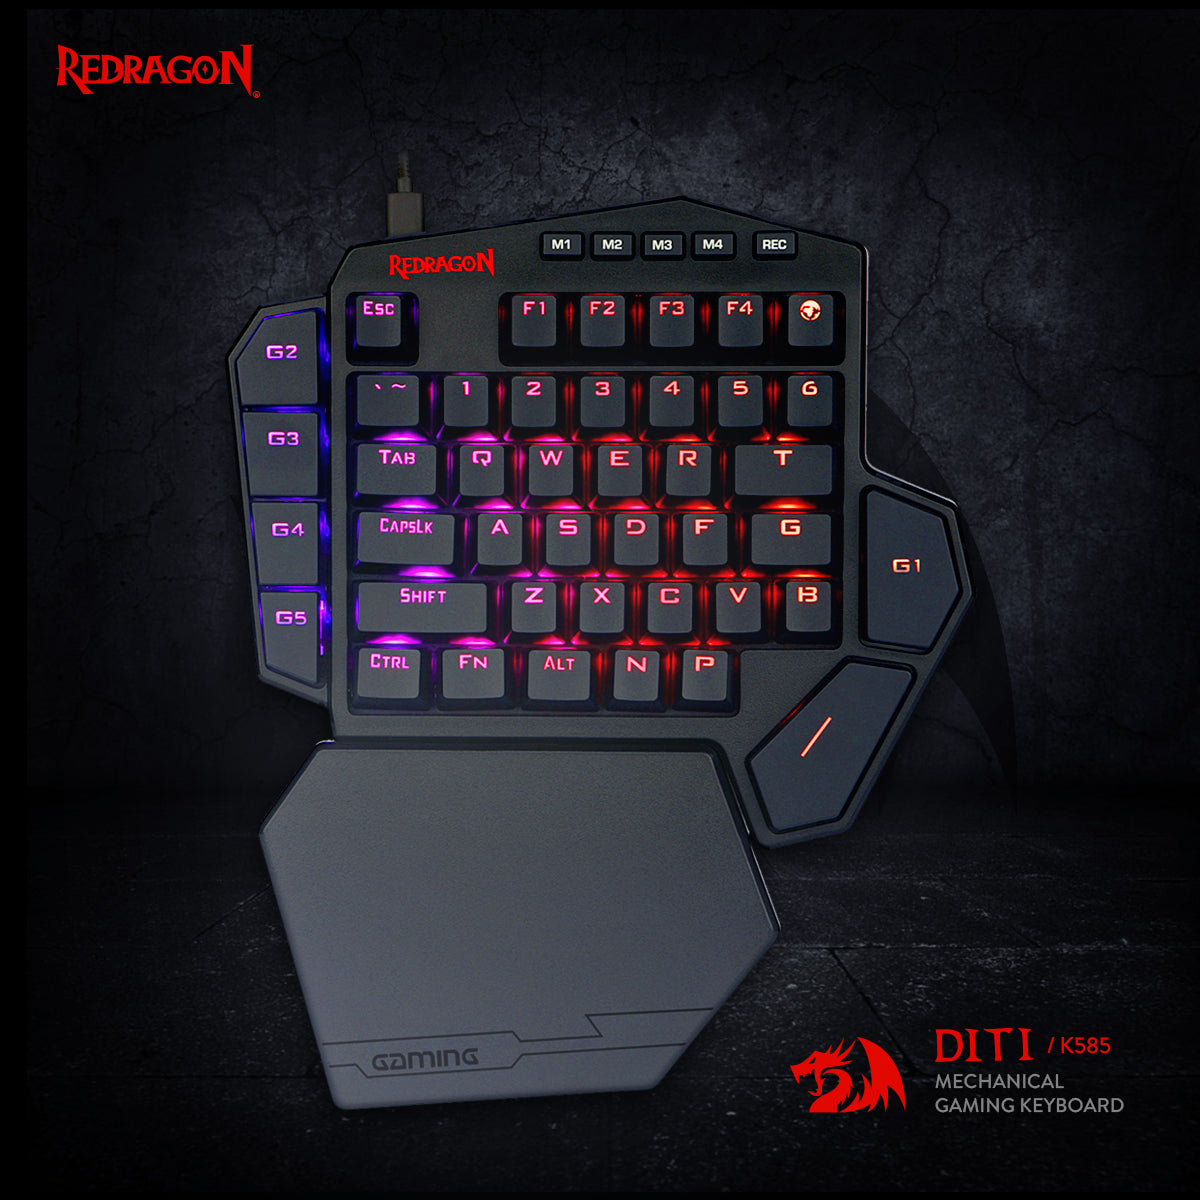 redragon one handed keyboard